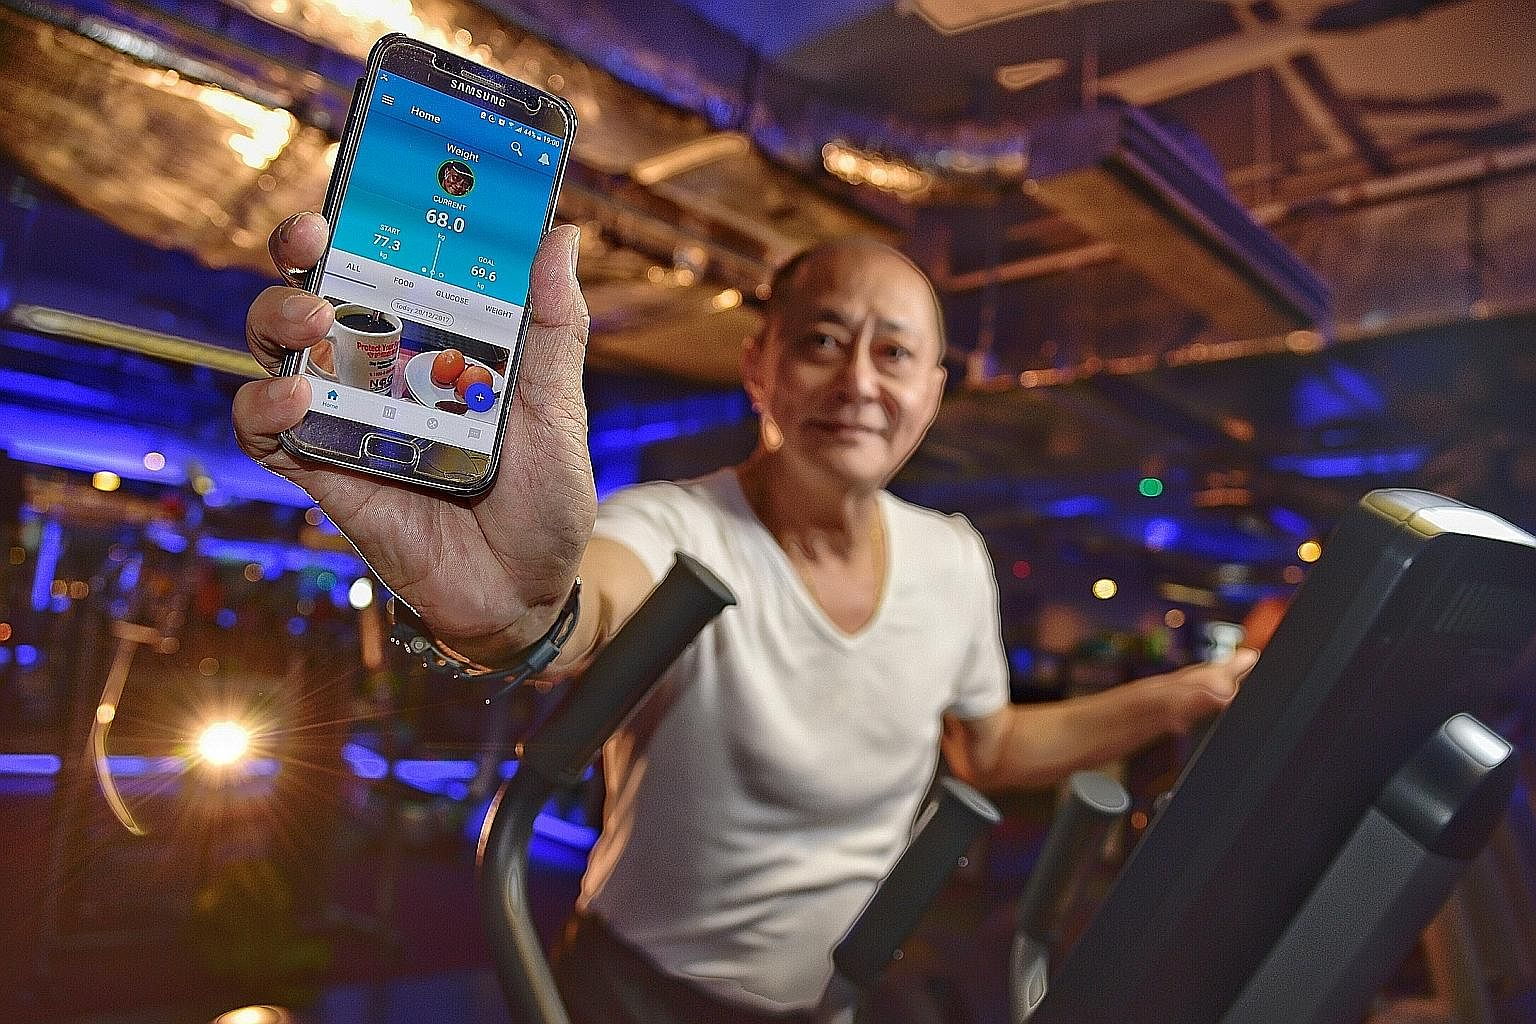 Mr Albert Koh, who is diabetic, lost nearly 10kg with the help of the GlycoLeap app, which has been giving him advice on his meal choices. The app helps diabetics improve their diets by assessing their daily meals.